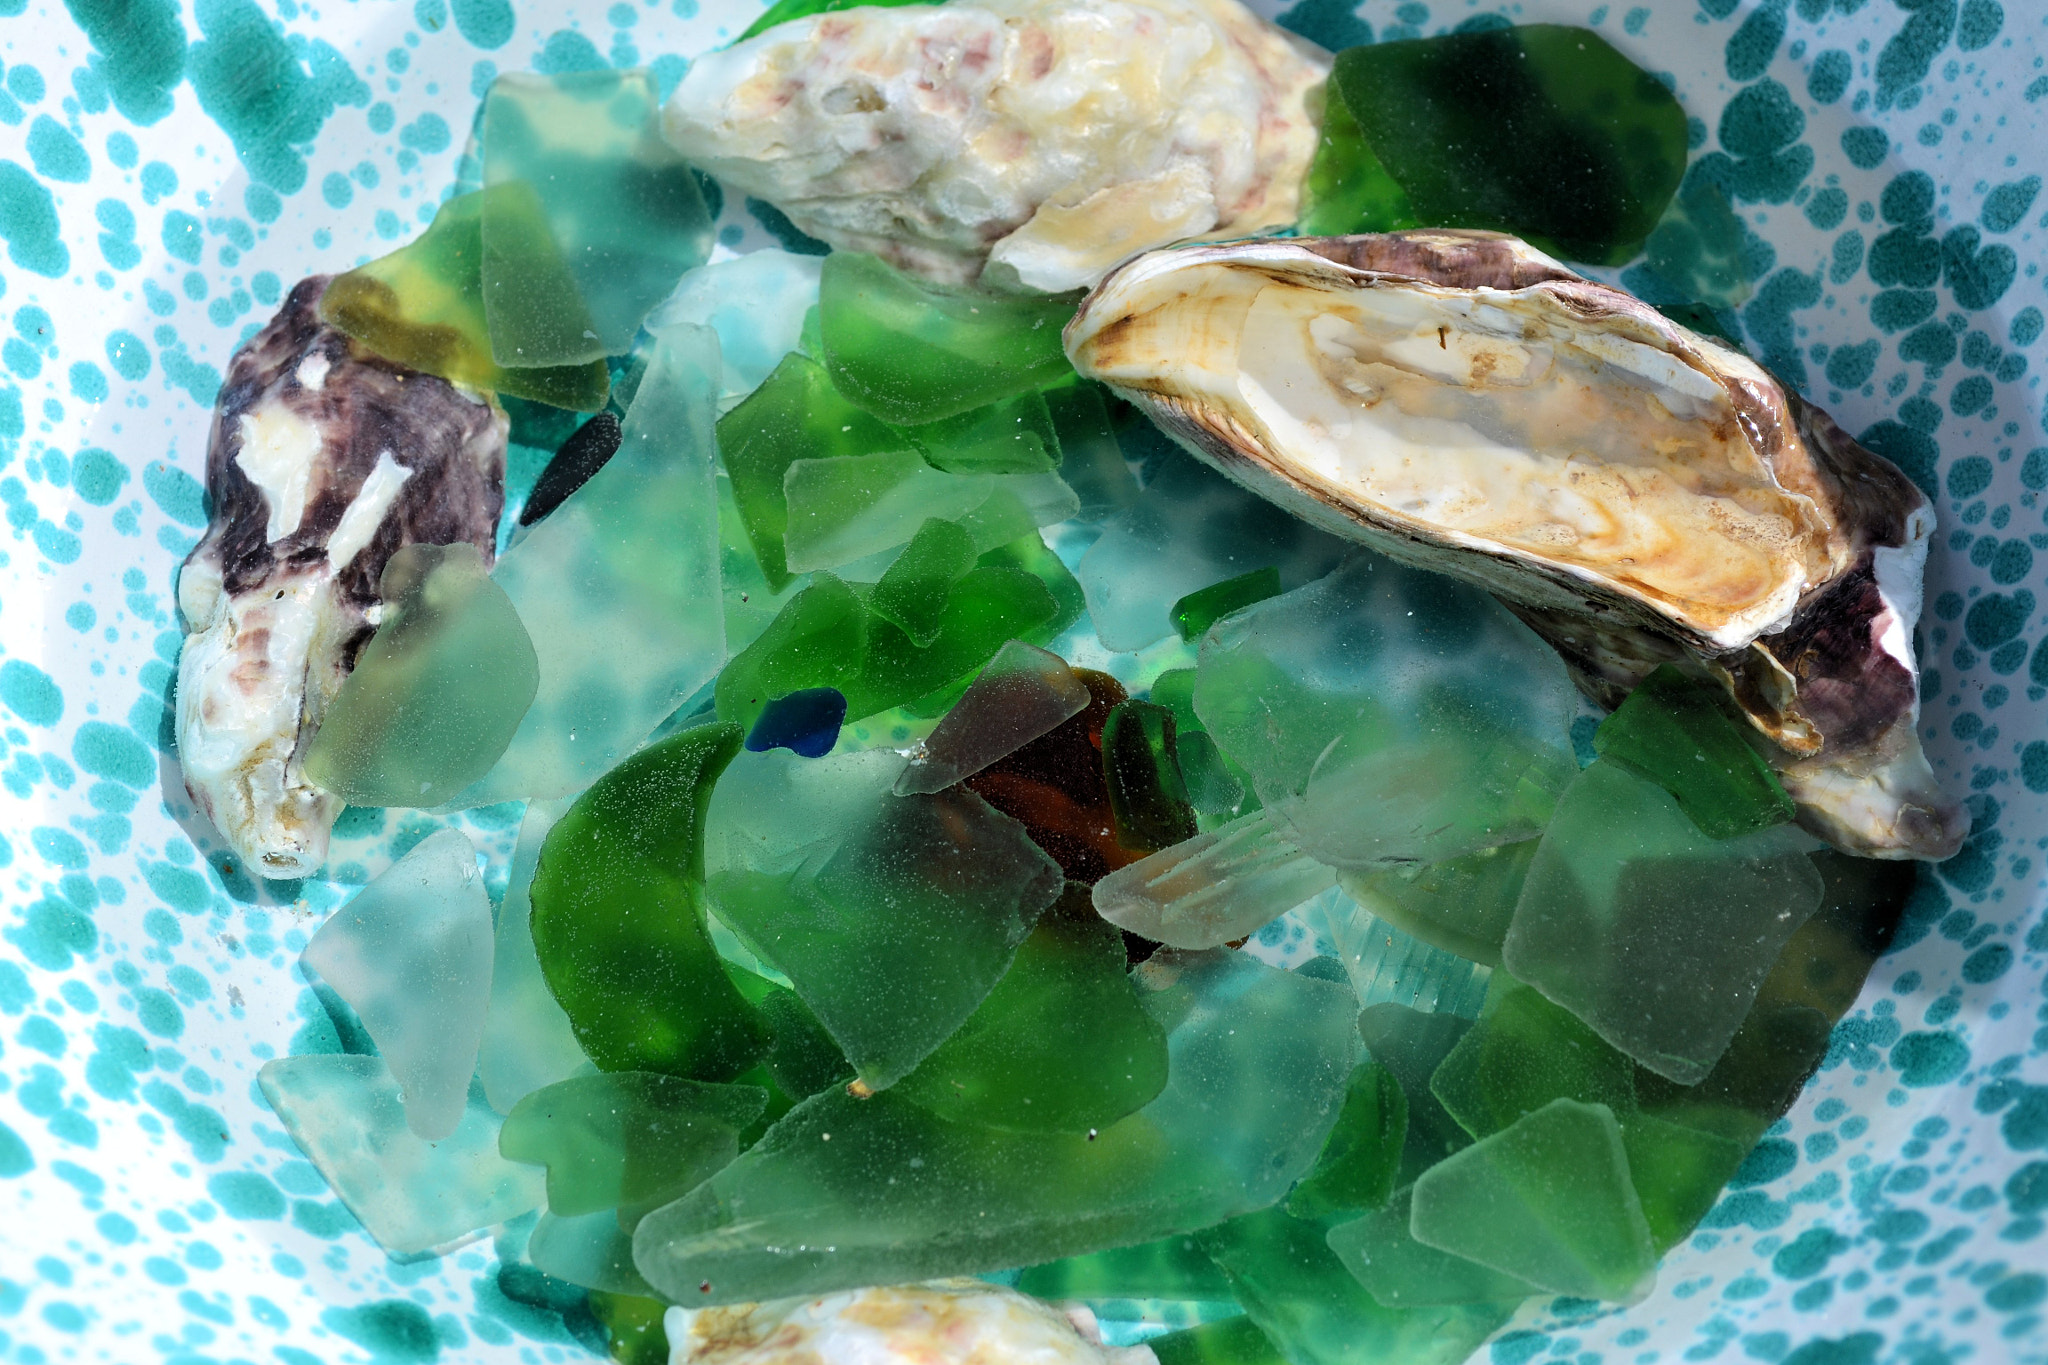 Photograph Beach treasures by Heather Aplin on 500px